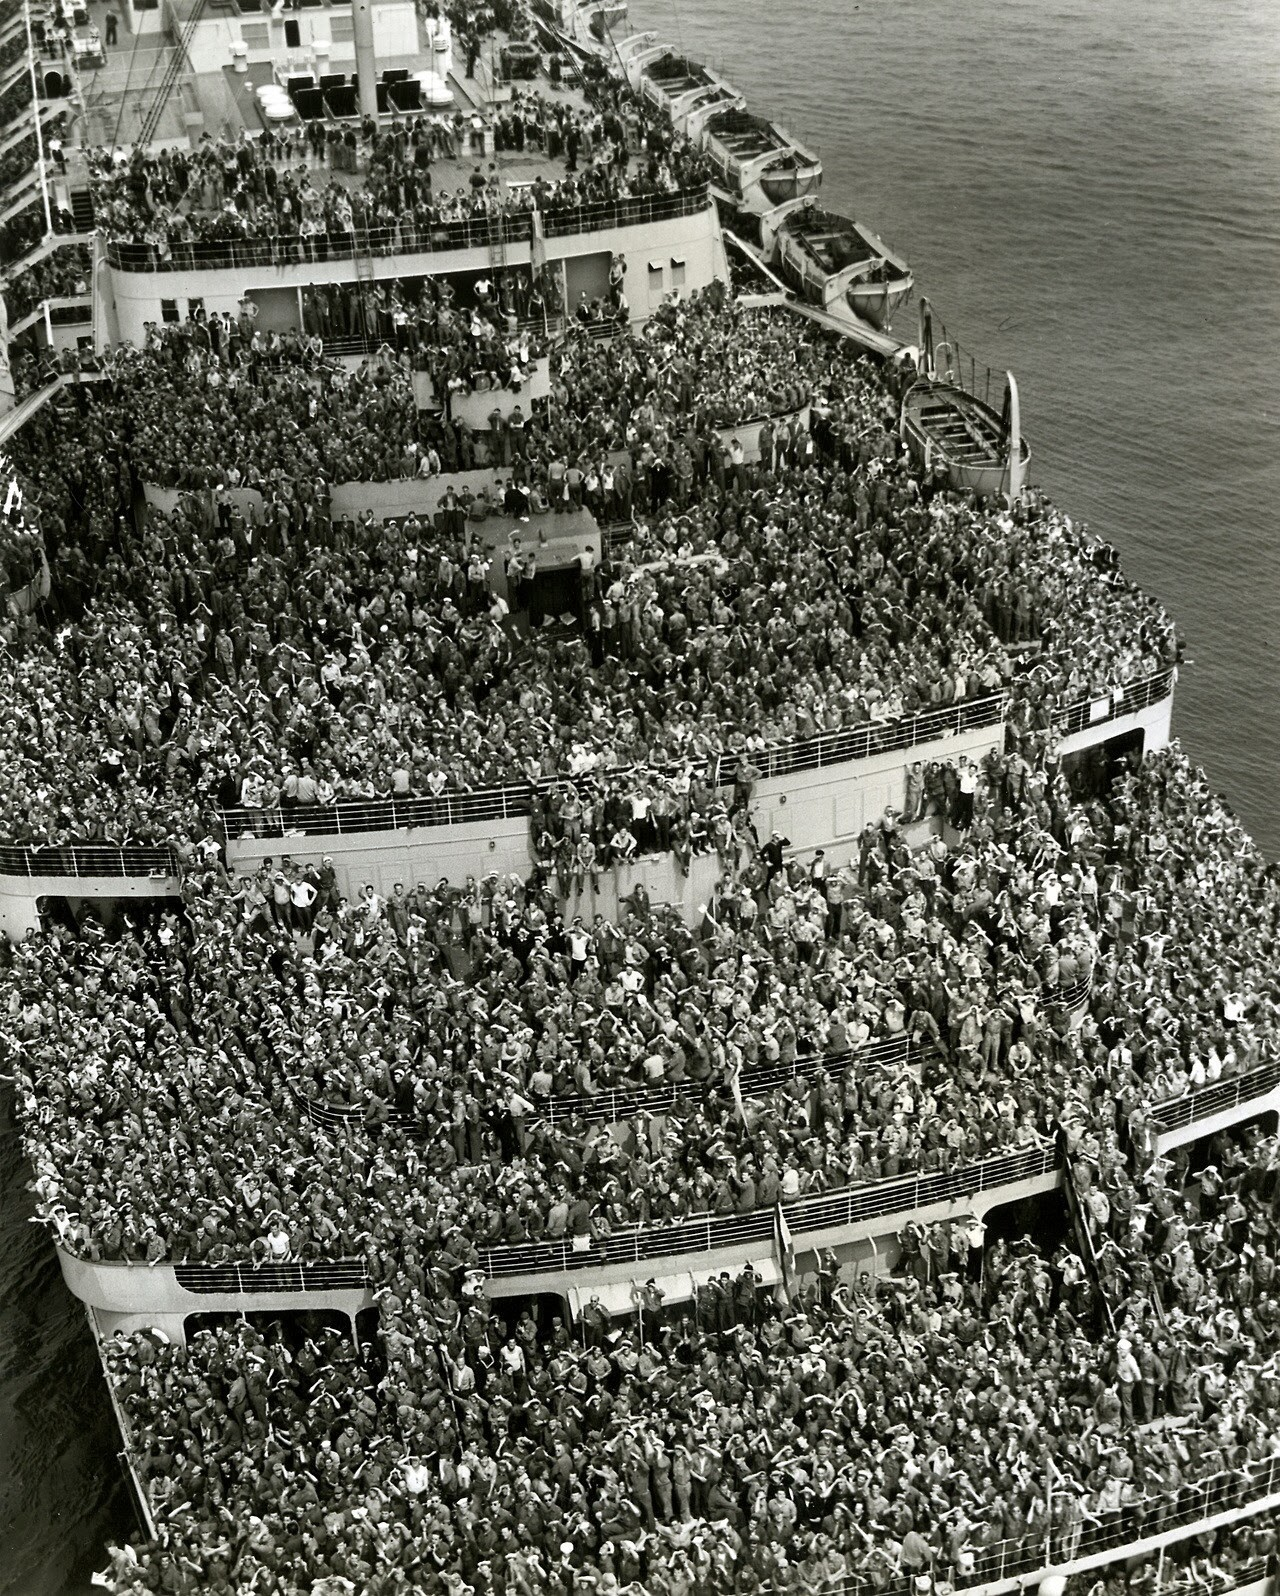 Crowded ship bringing American troops back home.